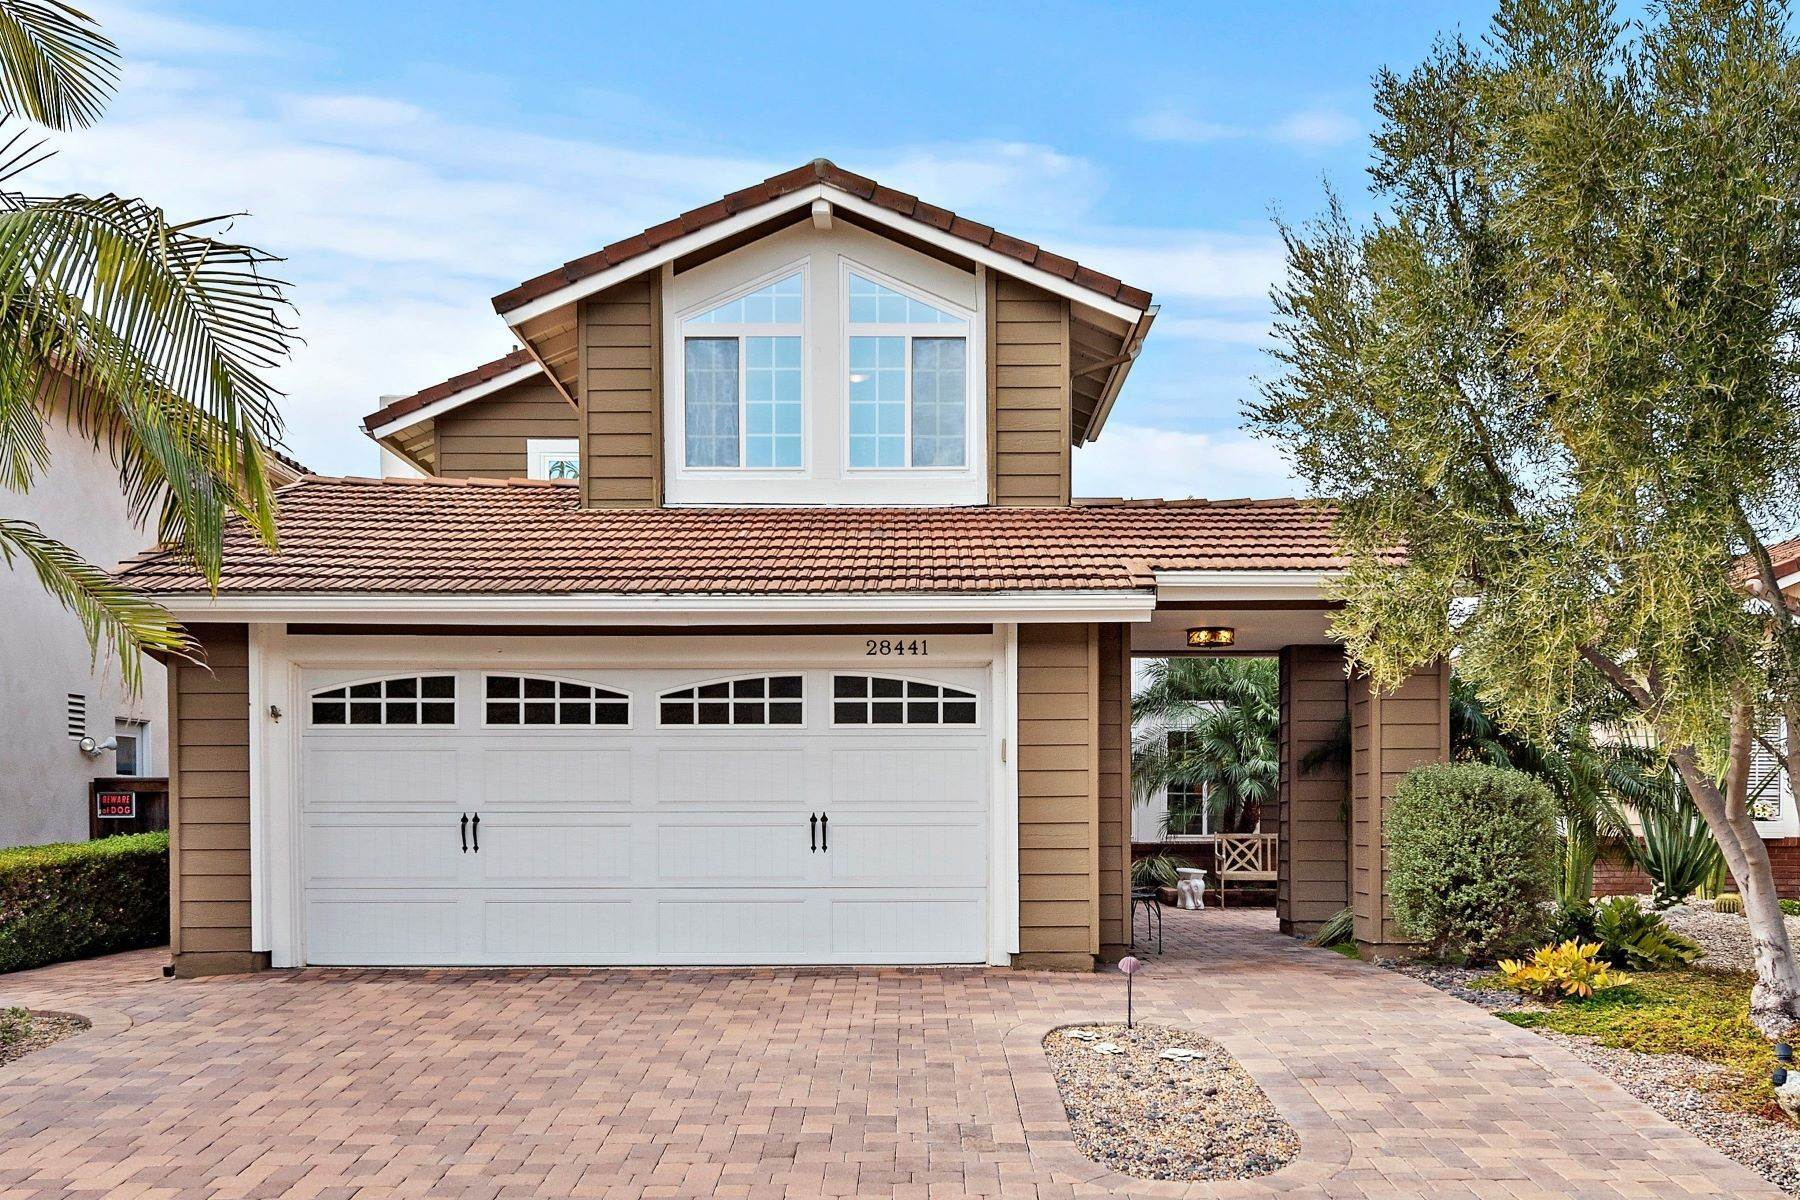 Single Family Homes por un Venta en 28441 Rancho De Linda, Laguna Niguel, CA 92677 28441 Rancho De Linda Laguna Niguel, California 92677 Estados Unidos